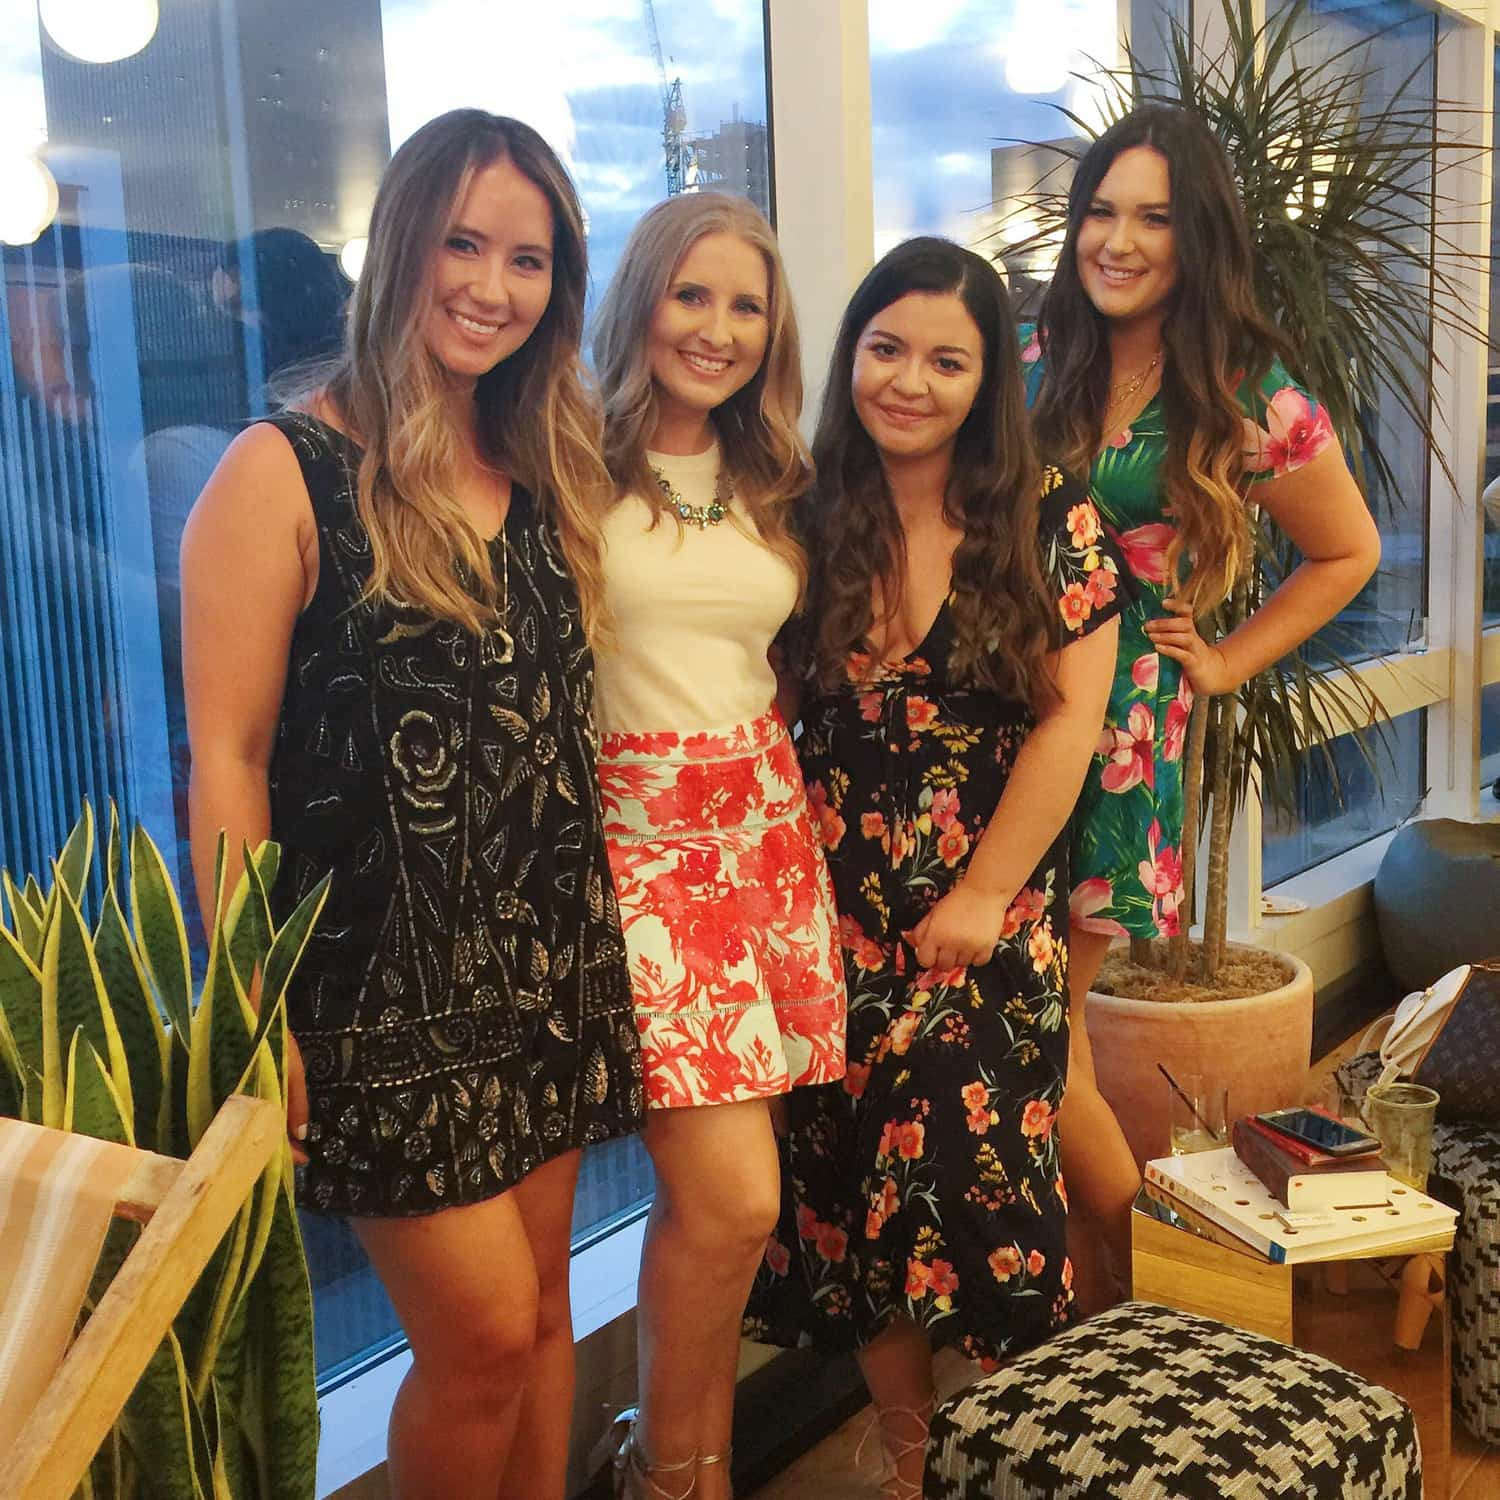 Beauty and fashion bloggers Meghan Cossmann from Boho Nouveau, Ashley Brooke Nicholas from Ashley Brooke Nicholas, Teresa Laucar from Money Can Buy Lipstick, and Michelle Kehoe from Mash Elle at the 2016 Create + Cultivate Los Angeles conference party